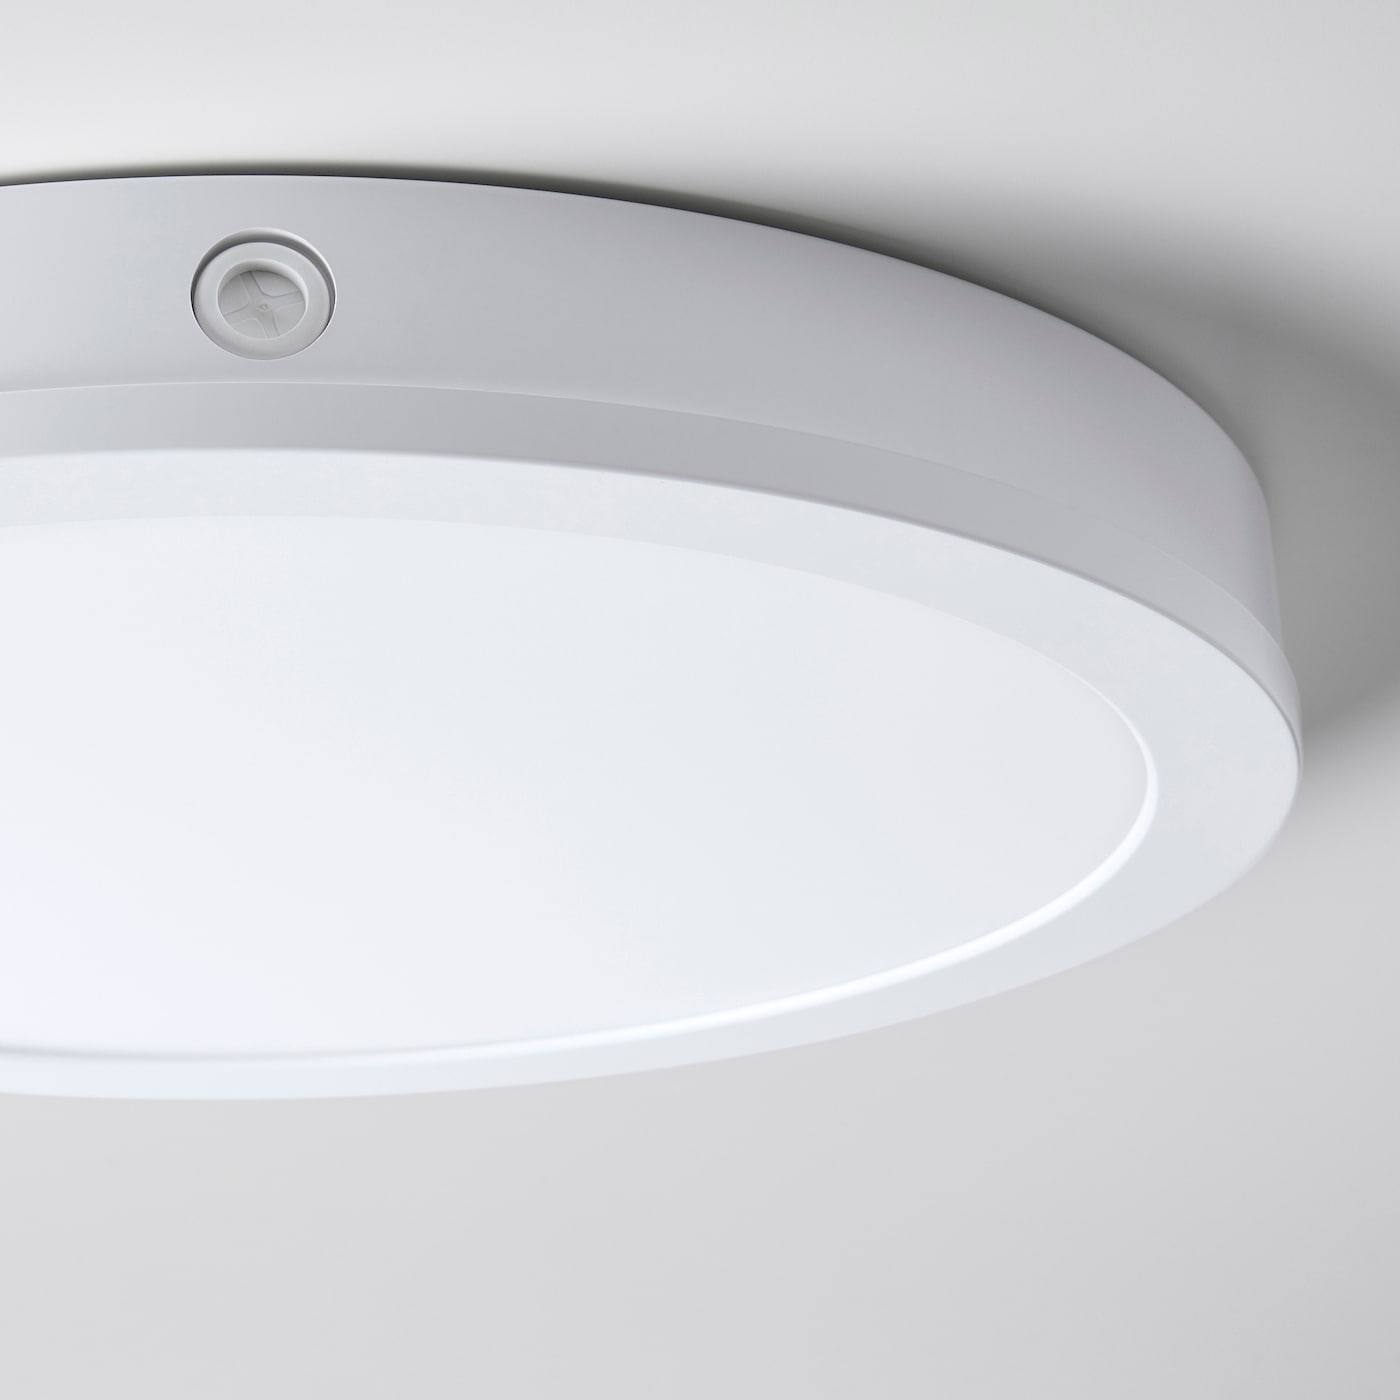 GUNNARP LED ceiling/wall lamp white dimmable/white spectrum 1500 lm 40 cm 5 cm 22 W 2700 K